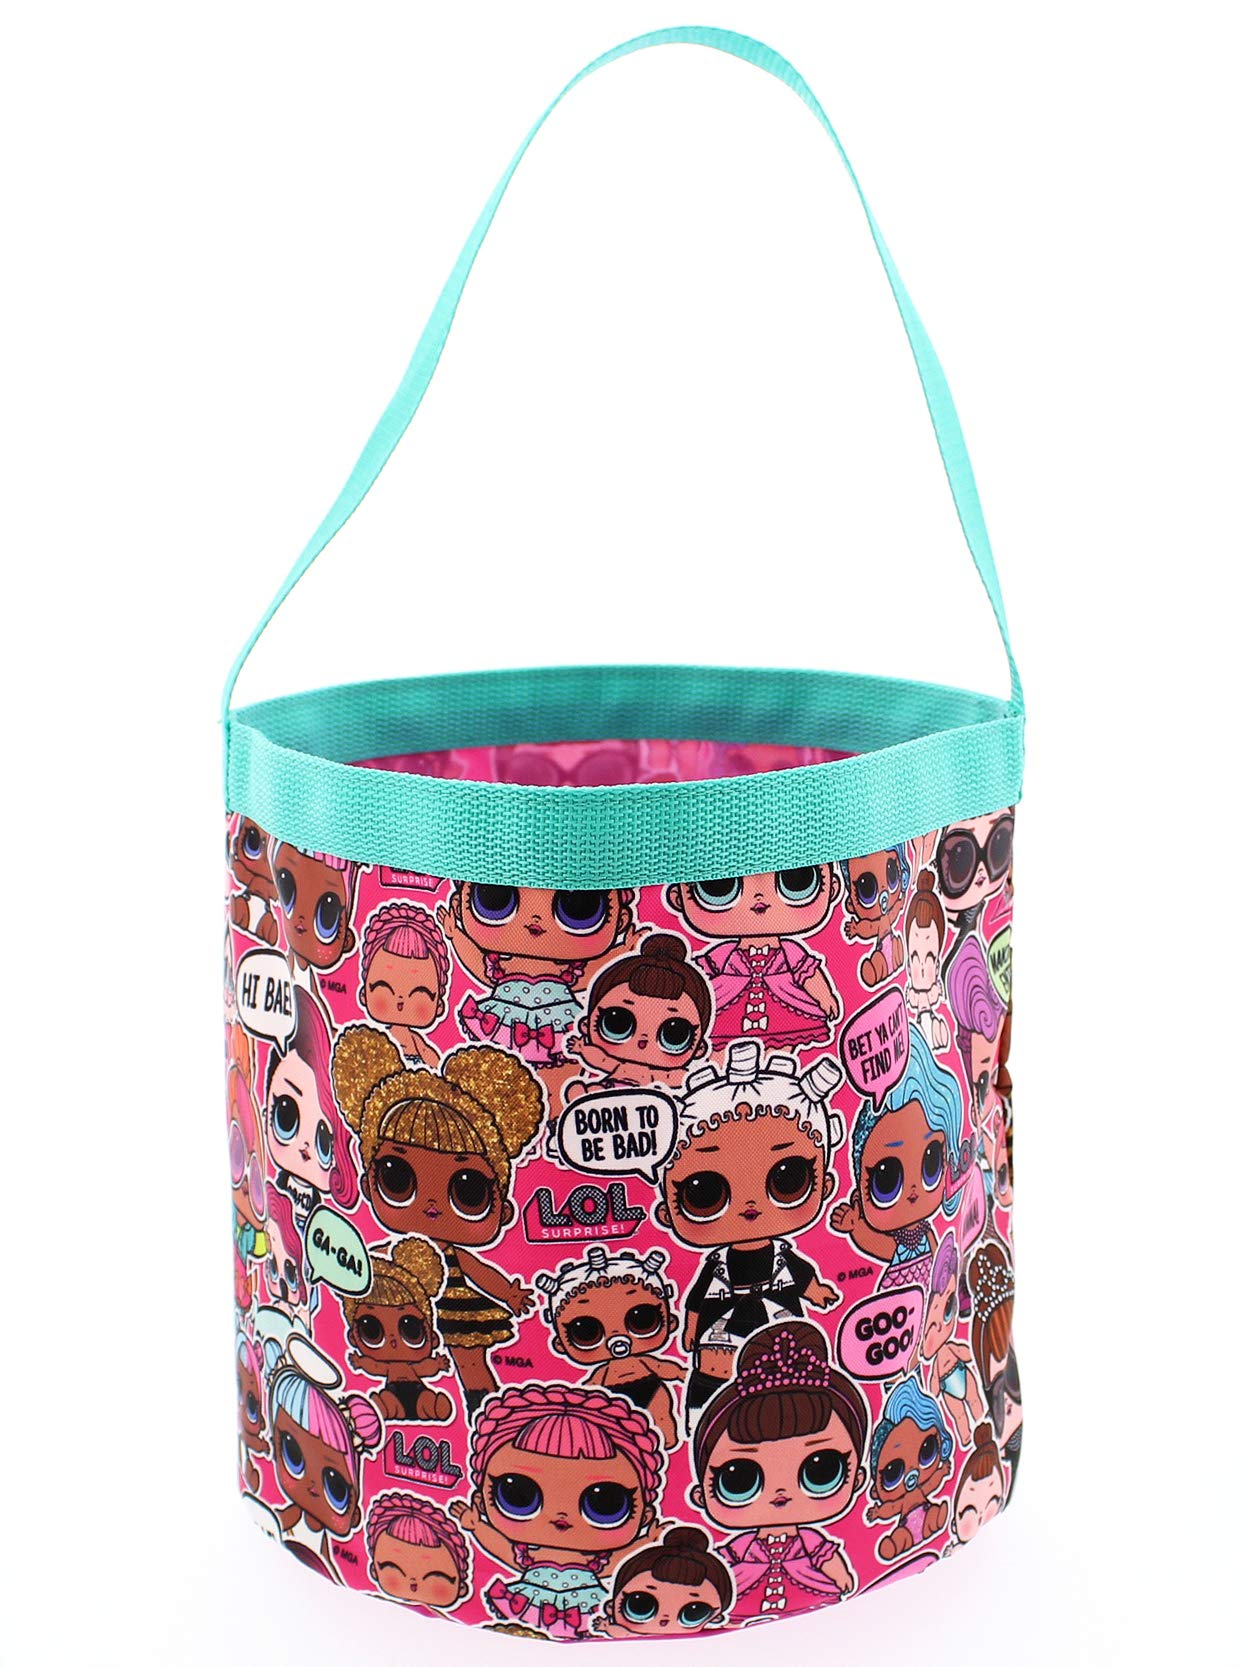 L.O.L. Surprise! Girls Collapsible Nylon Beach Bucket Toy Storage Gift Tote Bag (One Size, Pink) by L.O.L. Surprise! (Image #2)